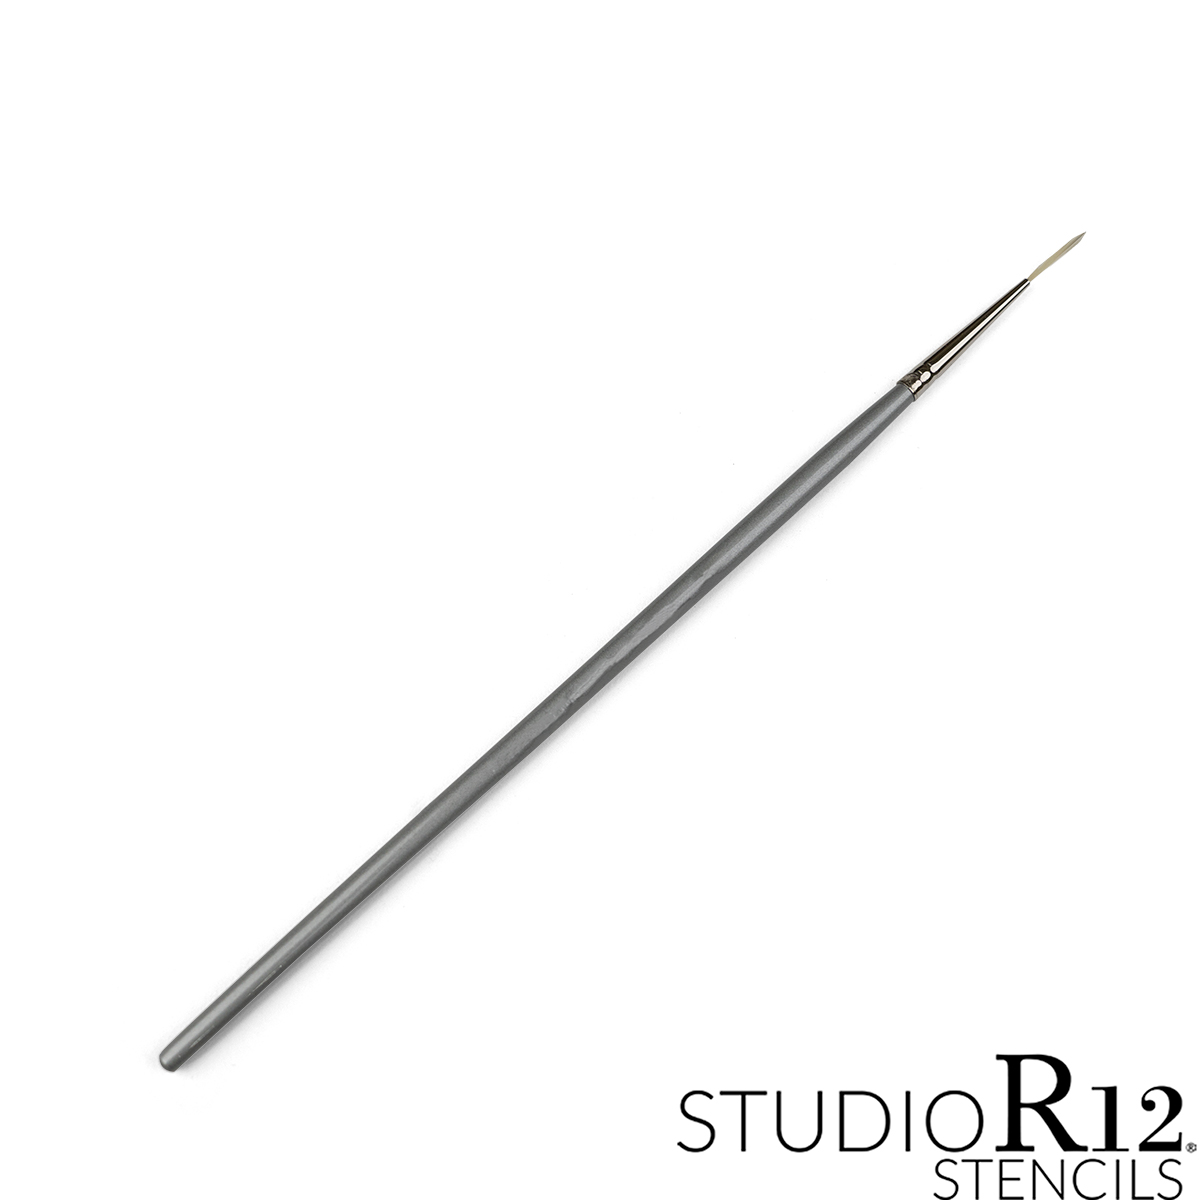 Mighty Fine Liner Brush by StudioR12   Sizes 5/0-10/0